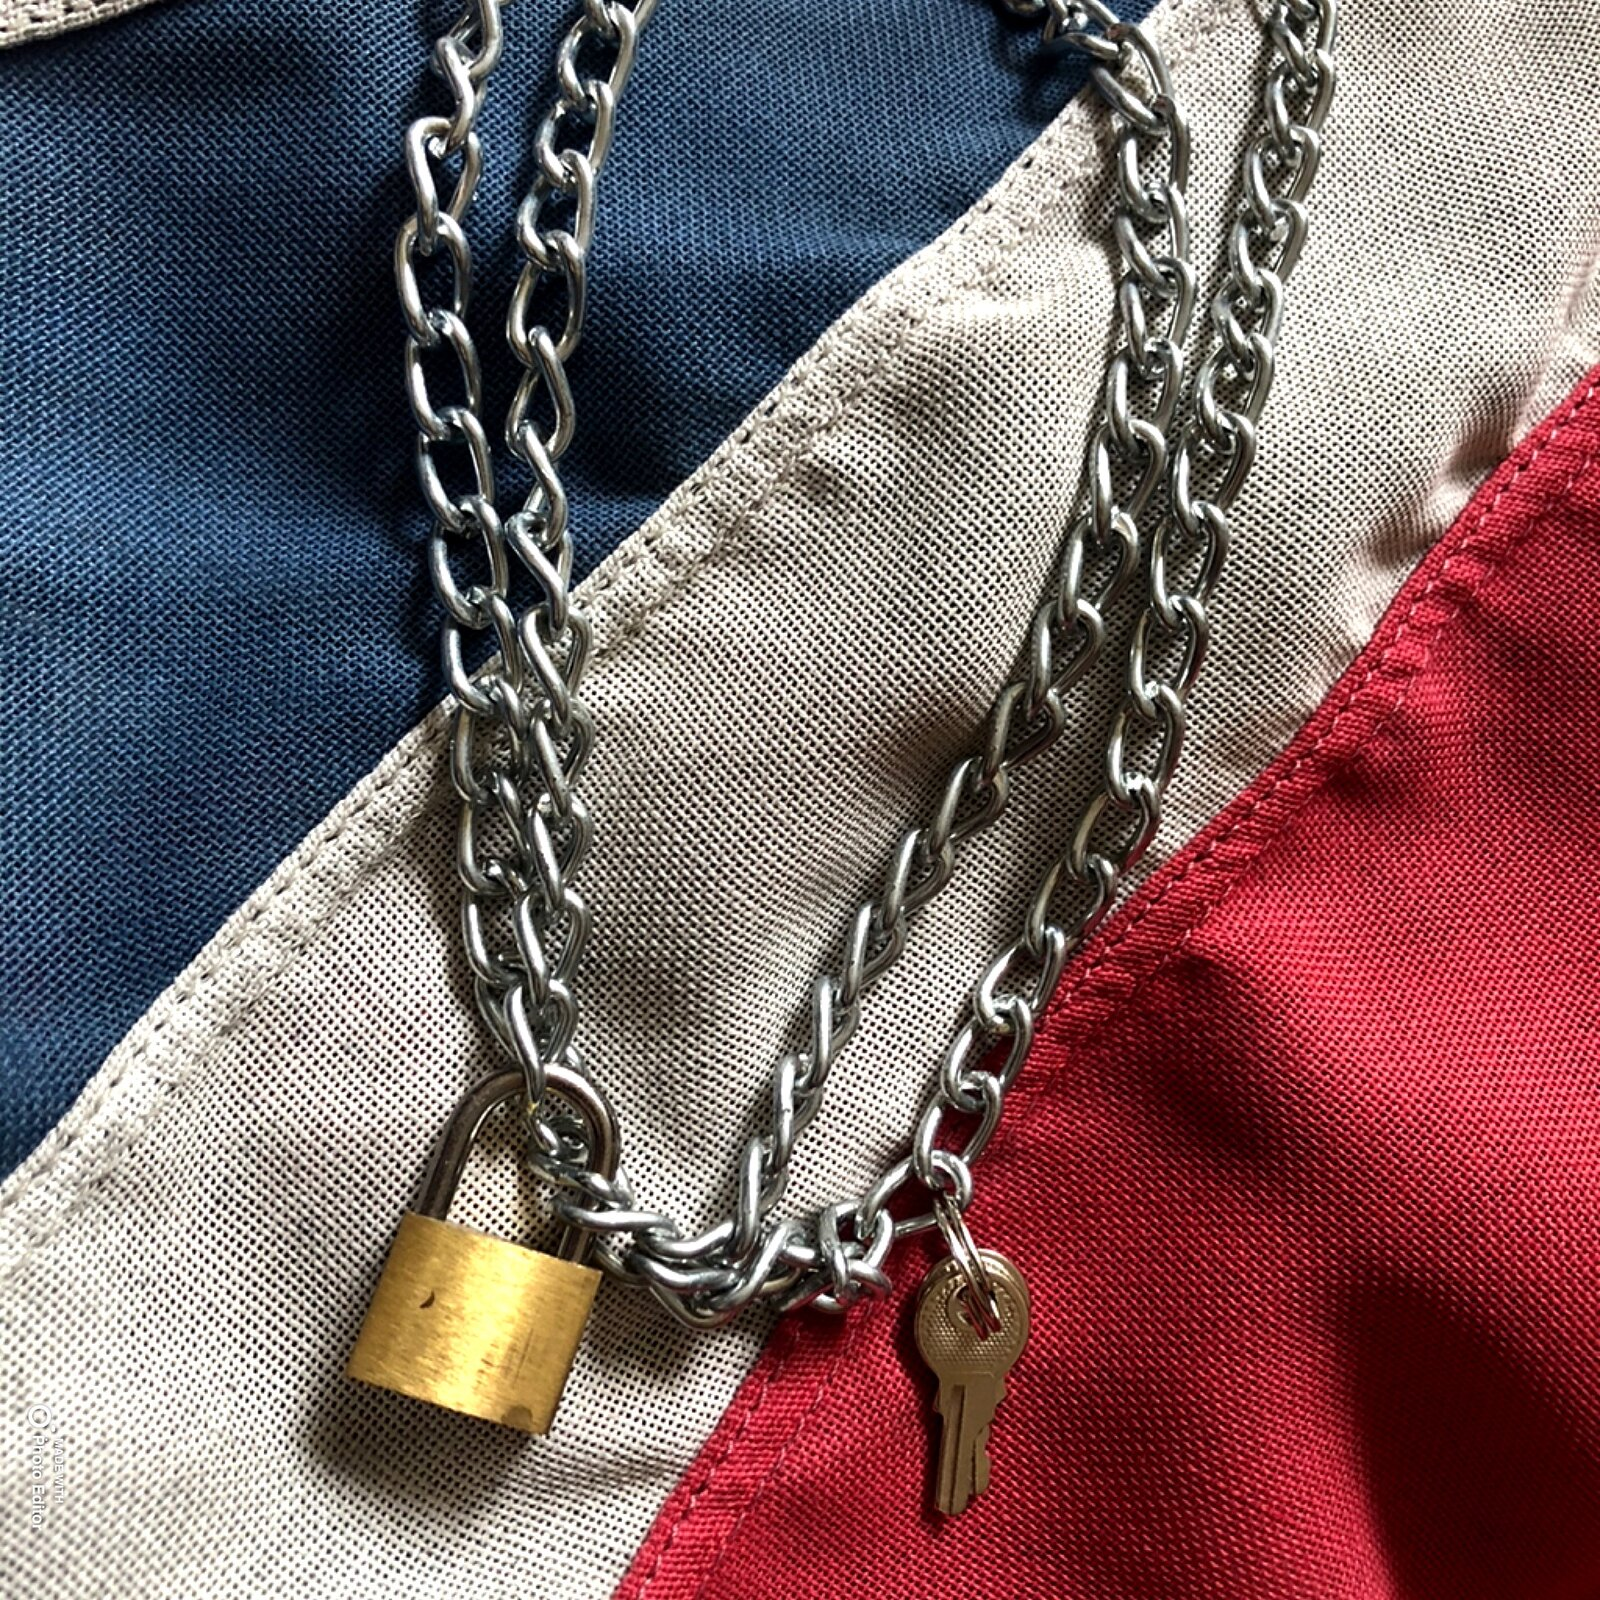 Chain and padlock necklace